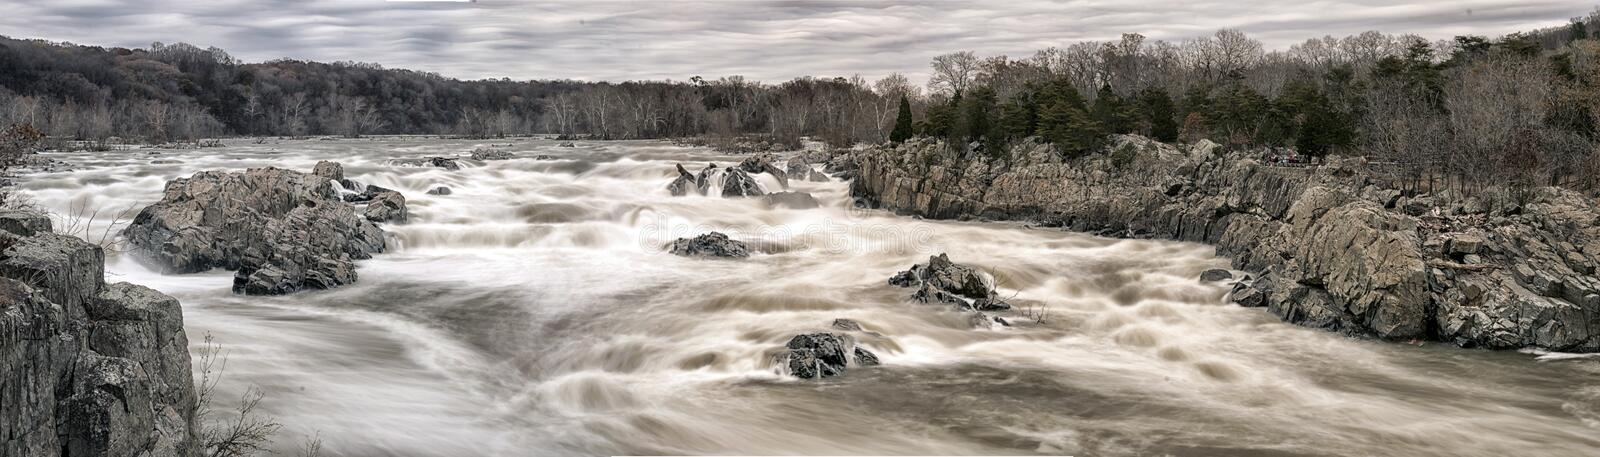 Great Falls Park Panorama royalty free stock images